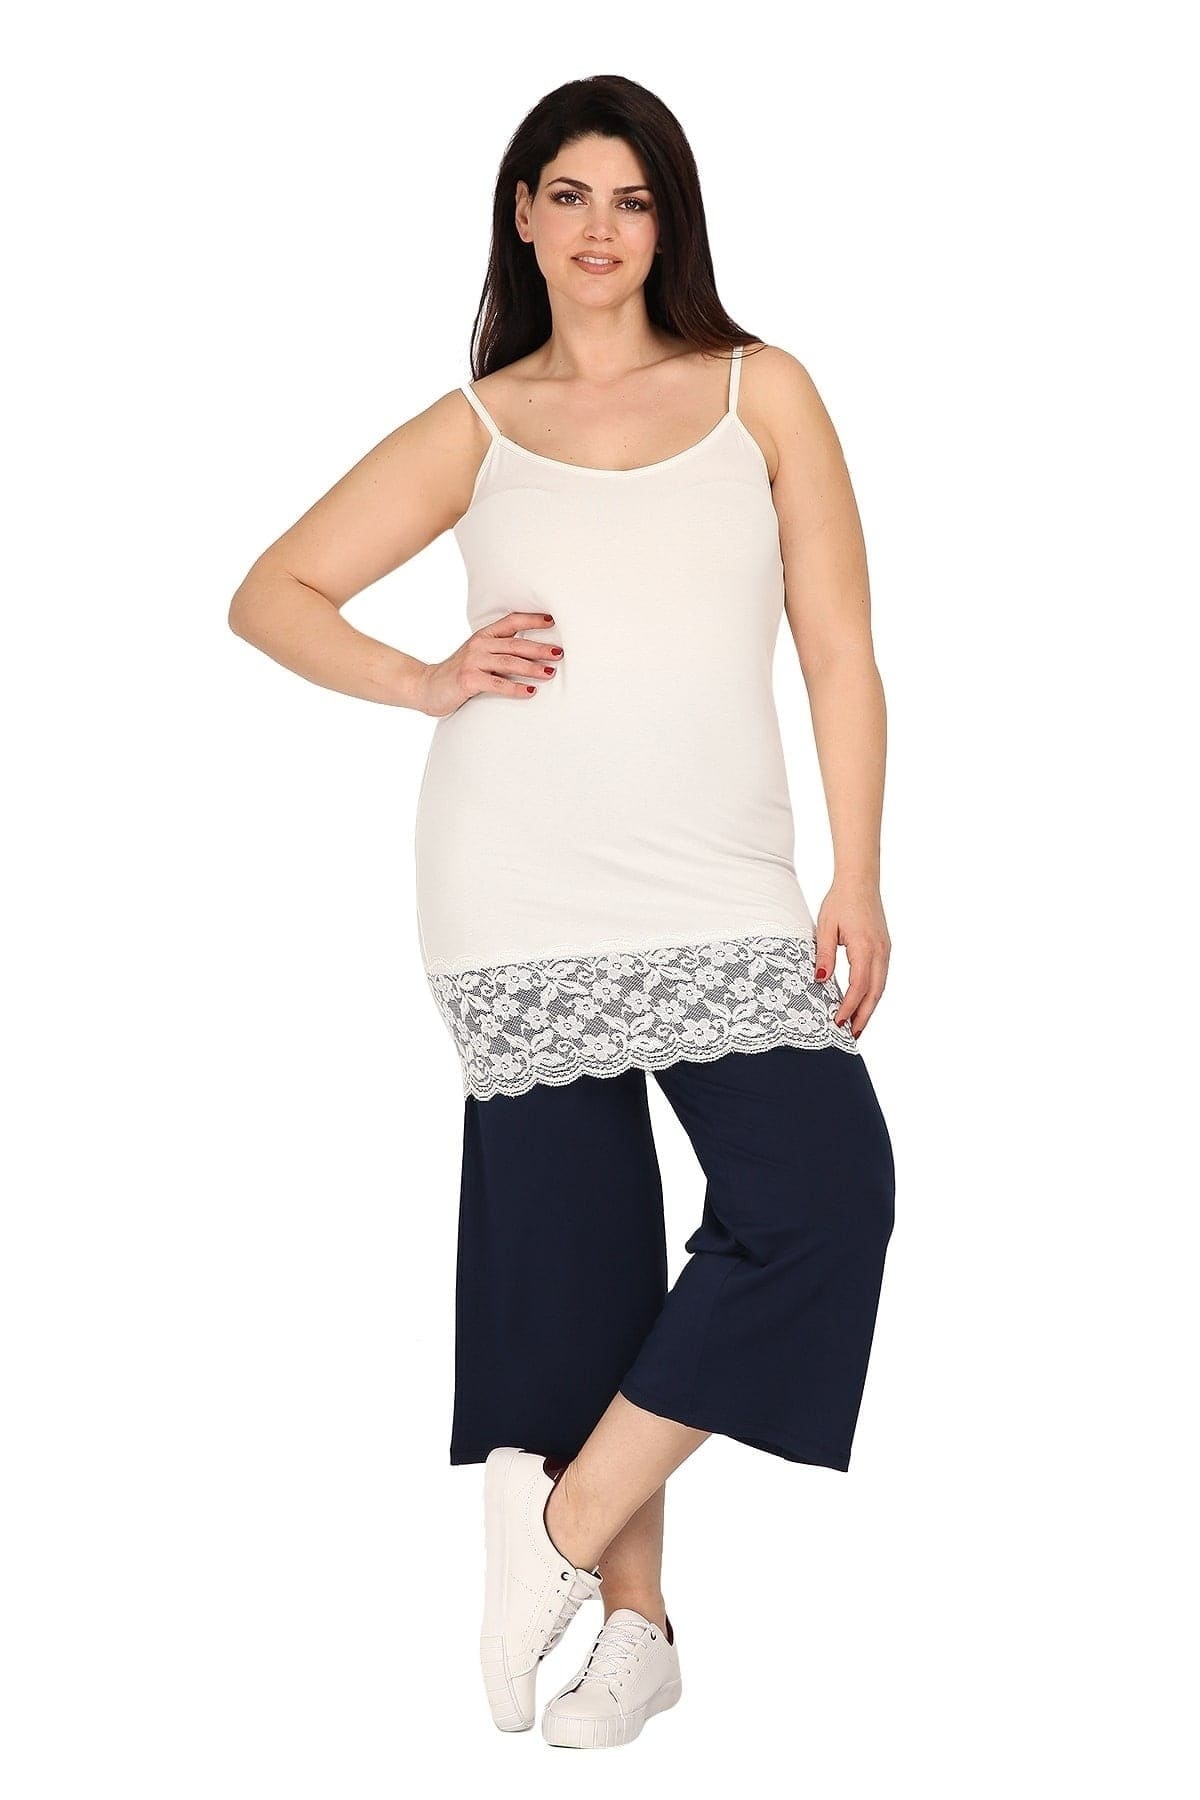 Longline slip top with lace